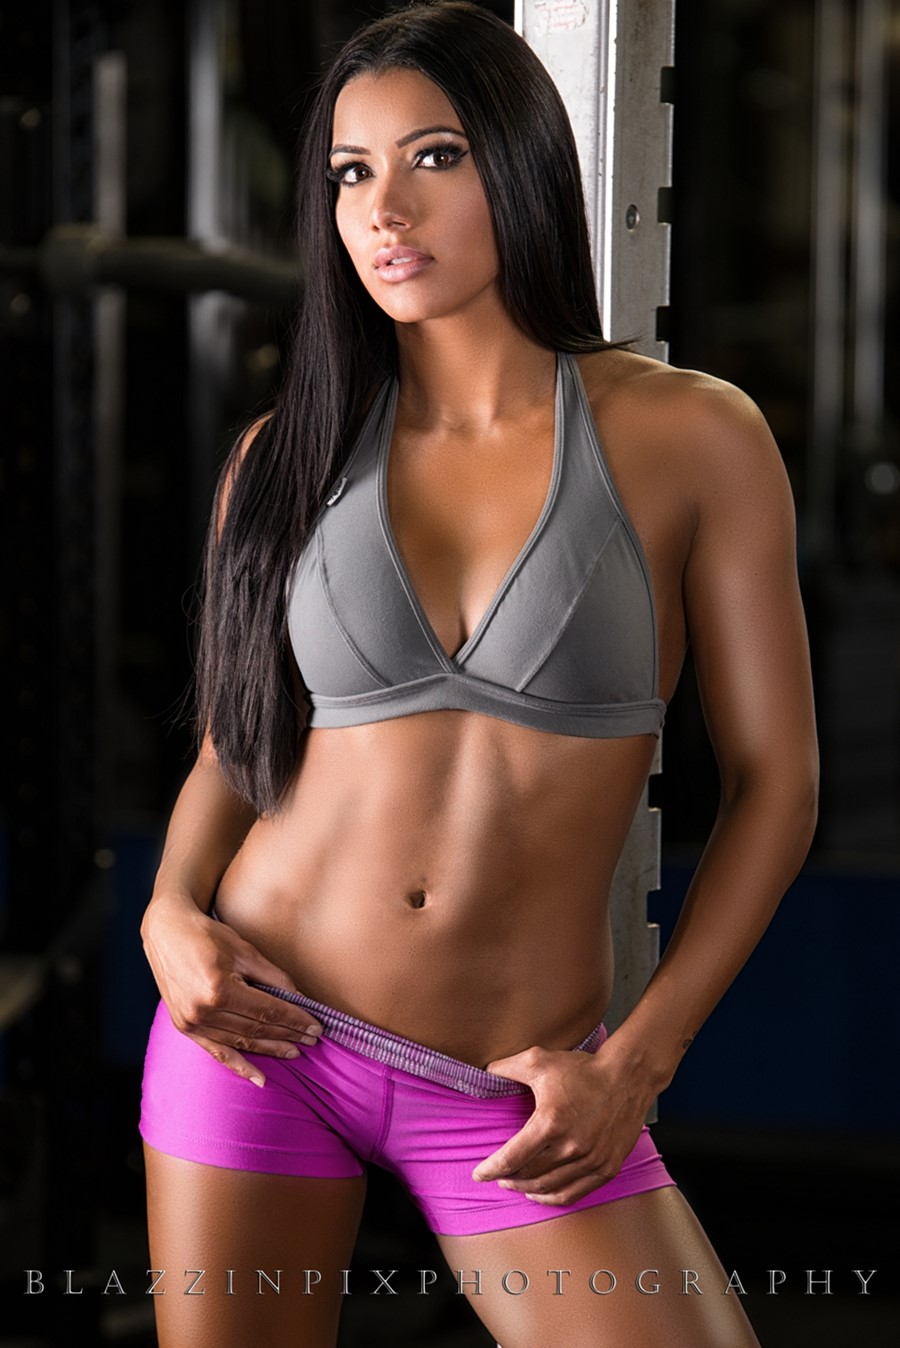 FitNish.com Interview With Brazilian Fitness Model & WBFF Pro, Gabi Castrovinci